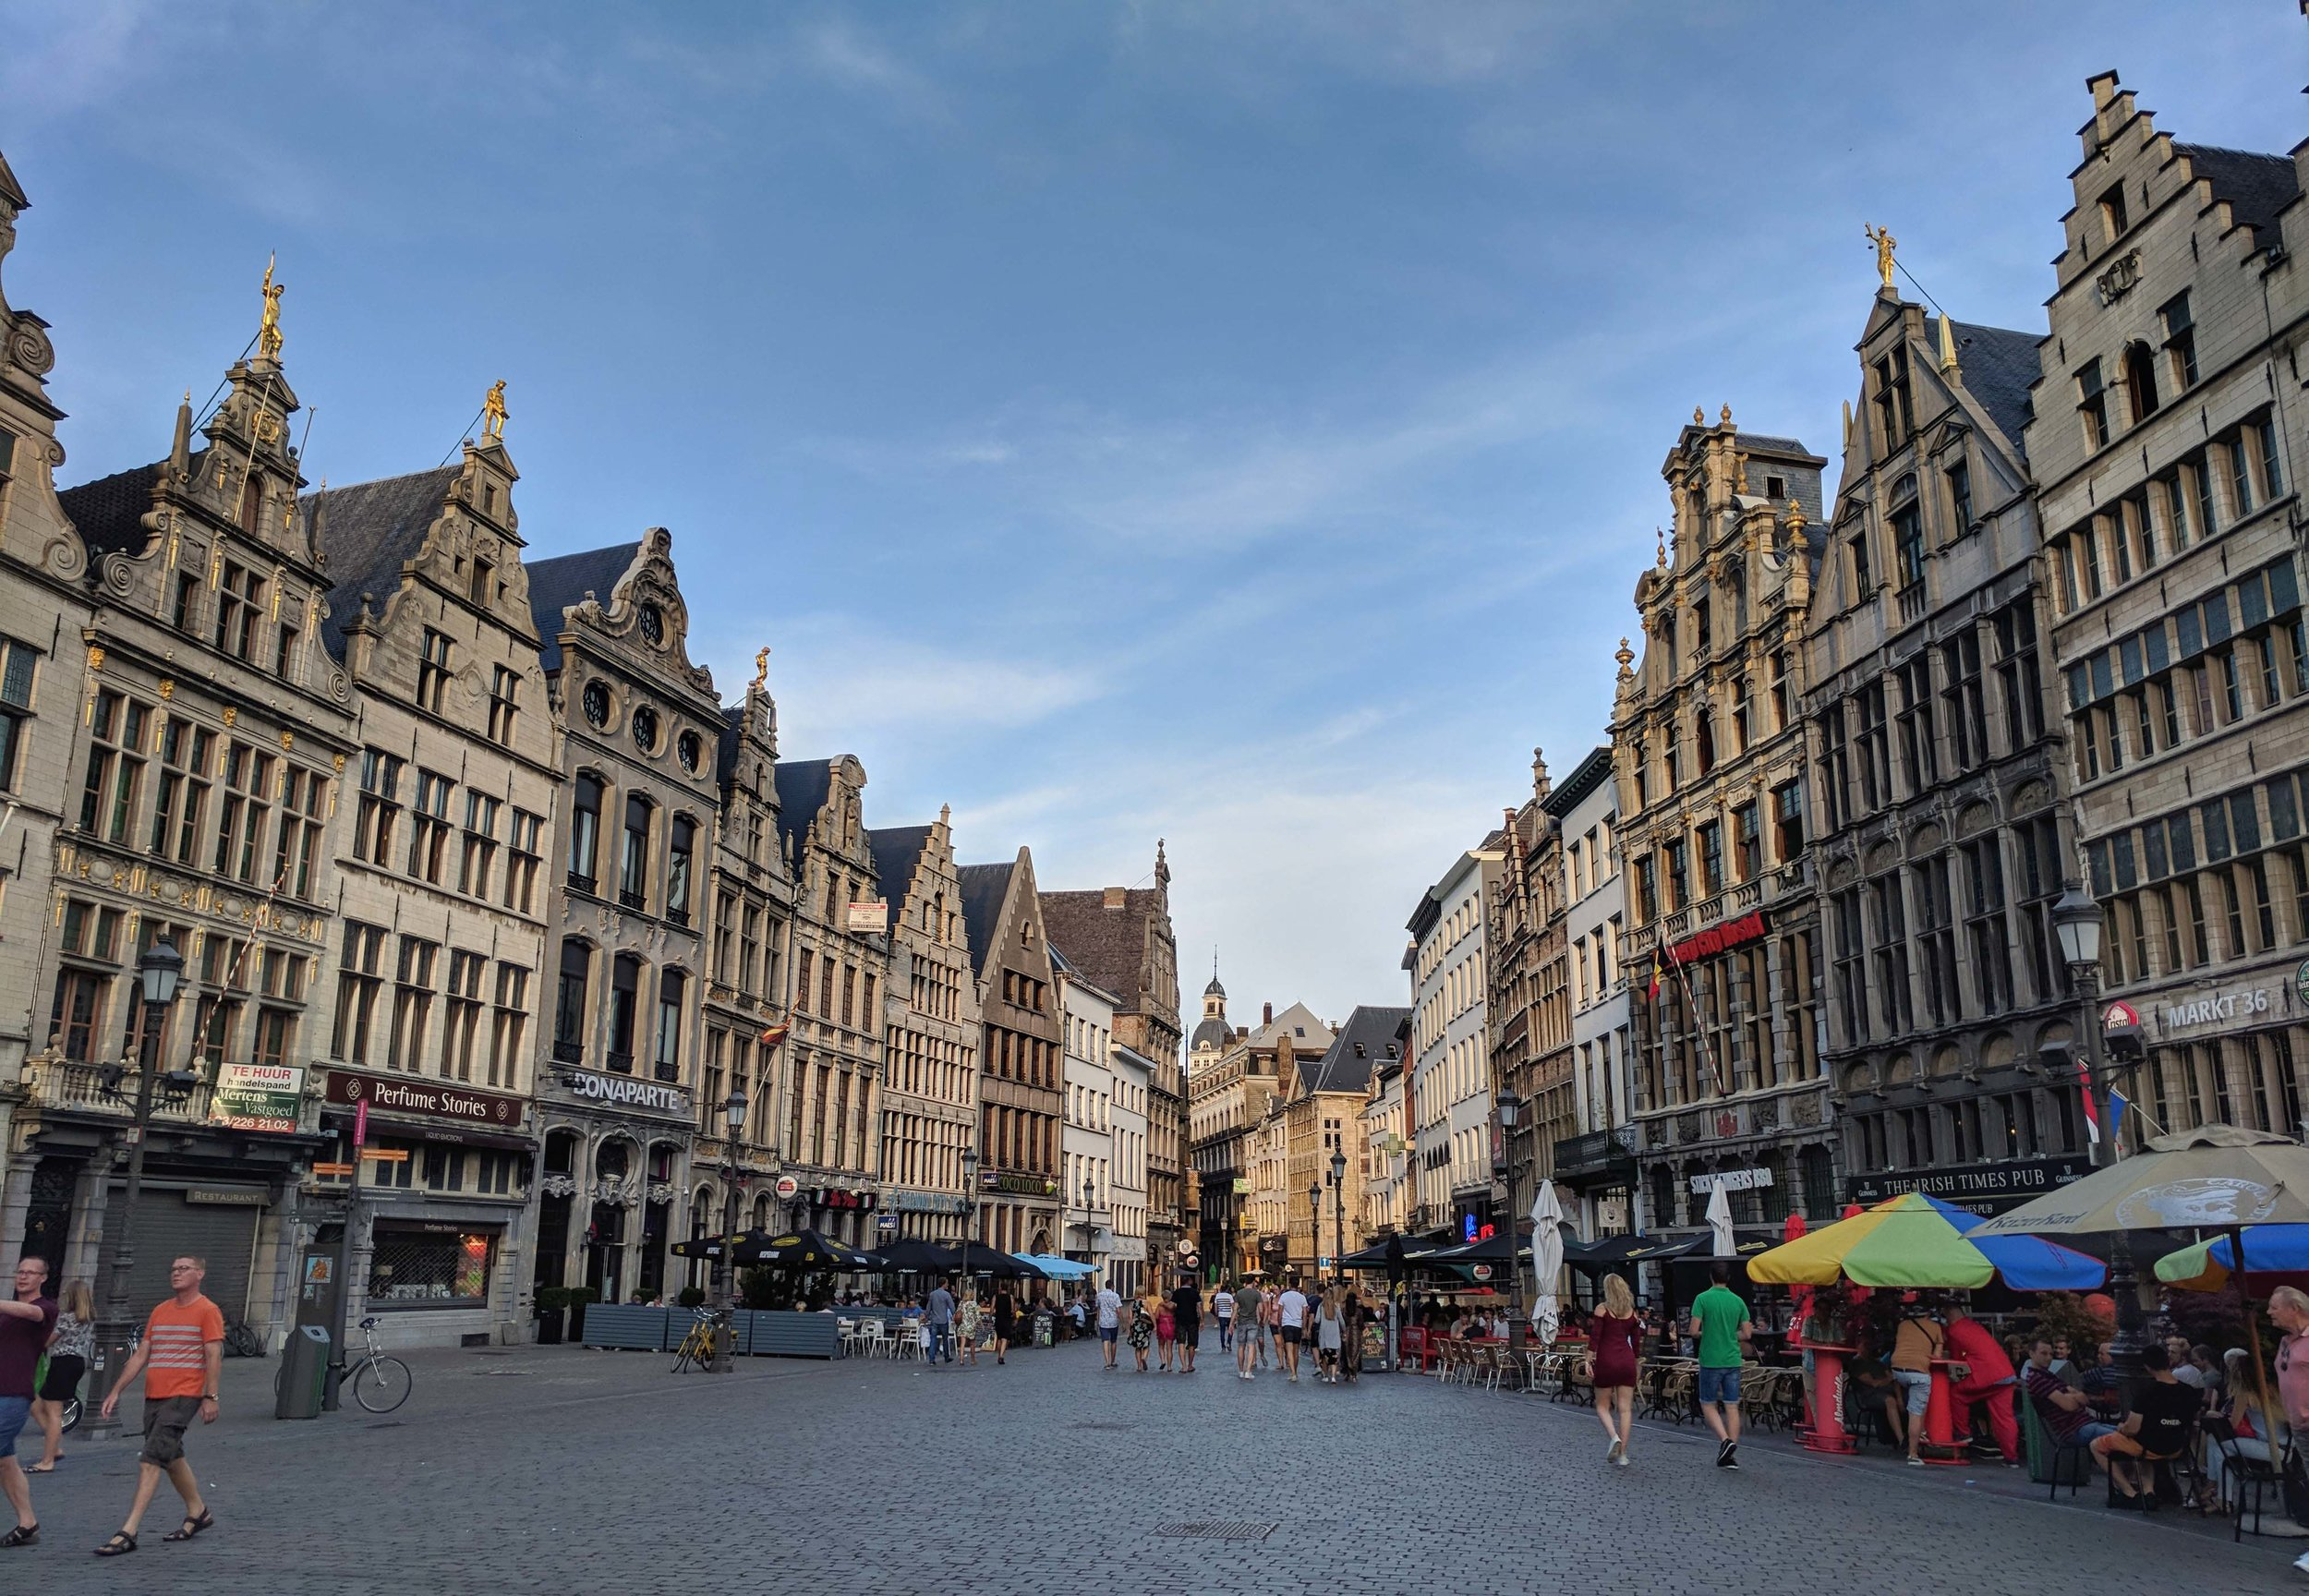 More fabulous architecture in Antwerp